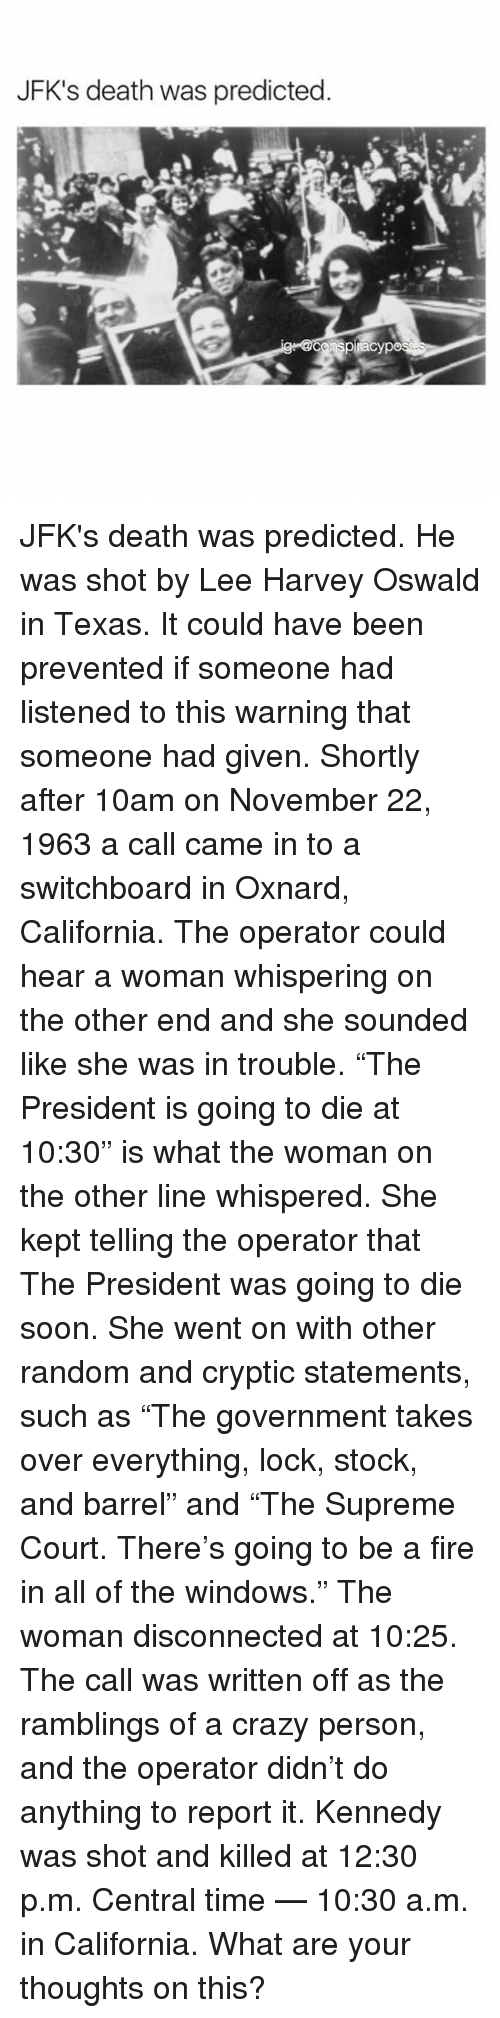 """Lee Harvey Oswald: JFK's death was predicted. JFK's death was predicted. He was shot by Lee Harvey Oswald in Texas. It could have been prevented if someone had listened to this warning that someone had given. Shortly after 10am on November 22, 1963 a call came in to a switchboard in Oxnard, California. The operator could hear a woman whispering on the other end and she sounded like she was in trouble. """"The President is going to die at 10:30"""" is what the woman on the other line whispered. She kept telling the operator that The President was going to die soon. She went on with other random and cryptic statements, such as """"The government takes over everything, lock, stock, and barrel"""" and """"The Supreme Court. There's going to be a fire in all of the windows."""" The woman disconnected at 10:25. The call was written off as the ramblings of a crazy person, and the operator didn't do anything to report it. Kennedy was shot and killed at 12:30 p.m. Central time — 10:30 a.m. in California. What are your thoughts on this?"""